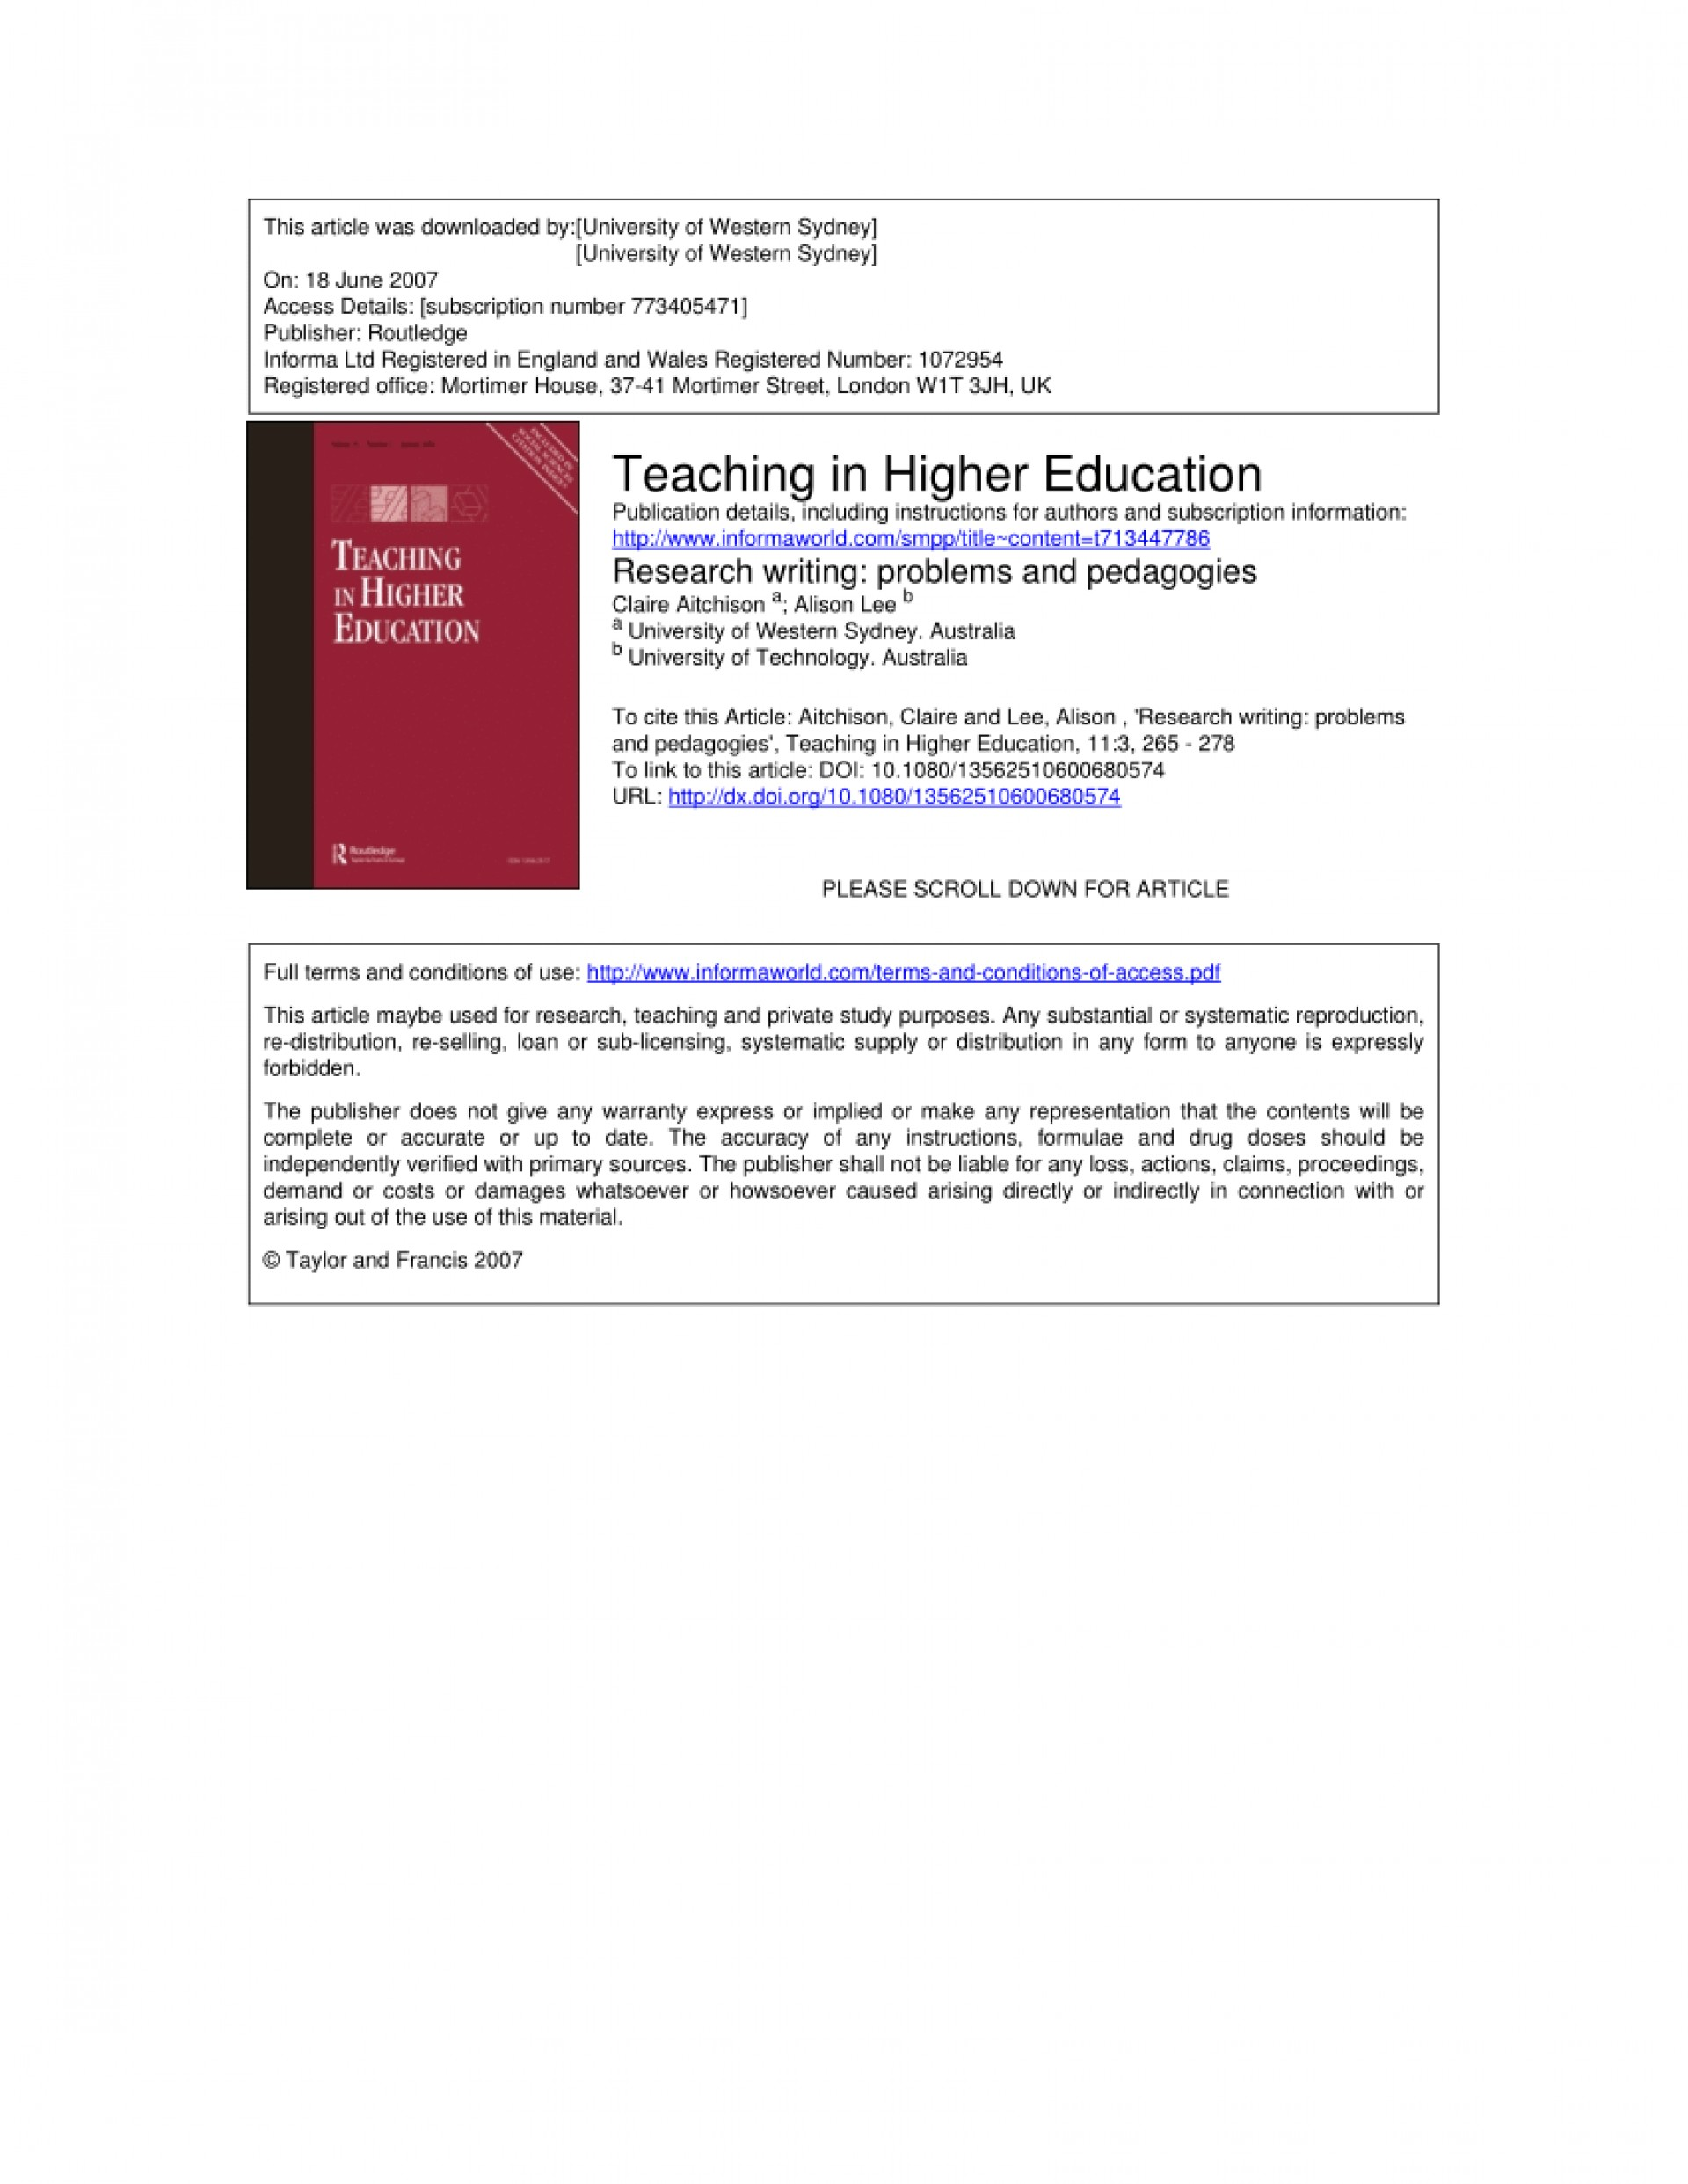 012 Research Paper Higher Education Pdf Amazing 1920